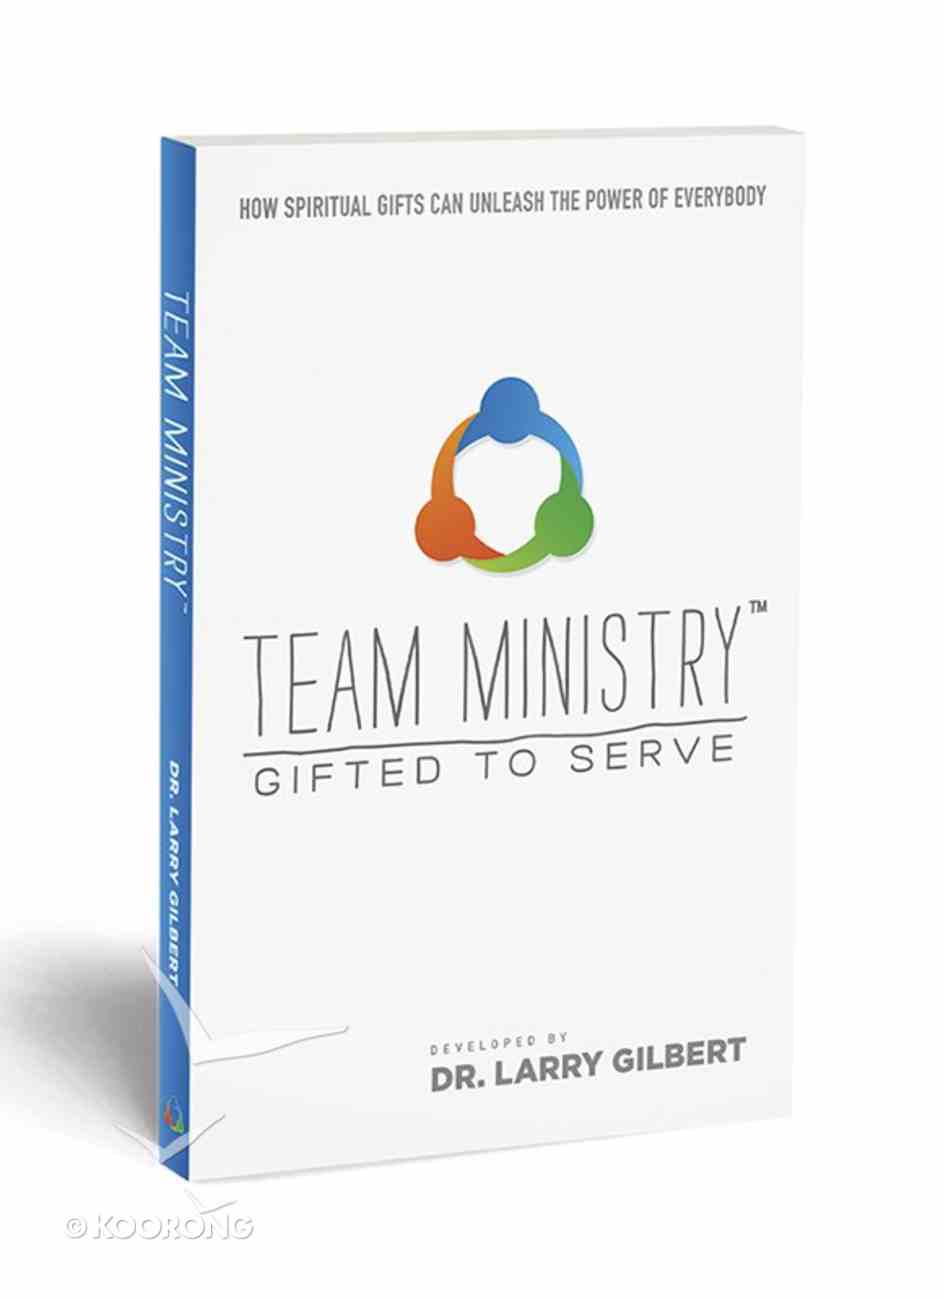 Team Ministry Gifted to Serve: How Spiritul Gifts Can Unleash the Power of Everyday Paperback